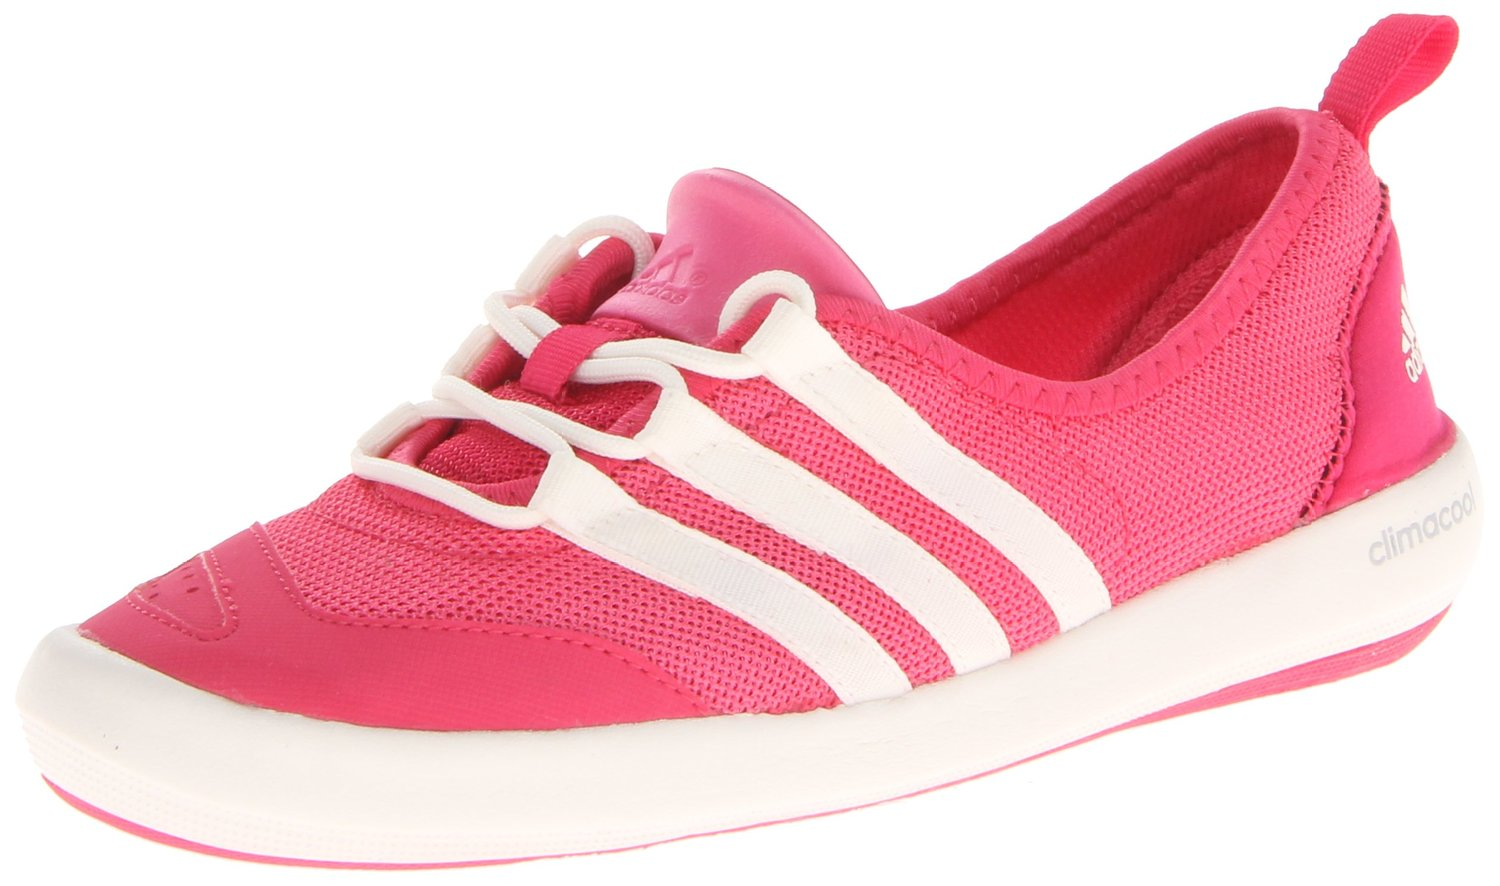 bba17ed48f0c13 ... norway adidas climacool boat sleek water shoes bahia pinkchalkvivid  berry f67aa 651ea ...